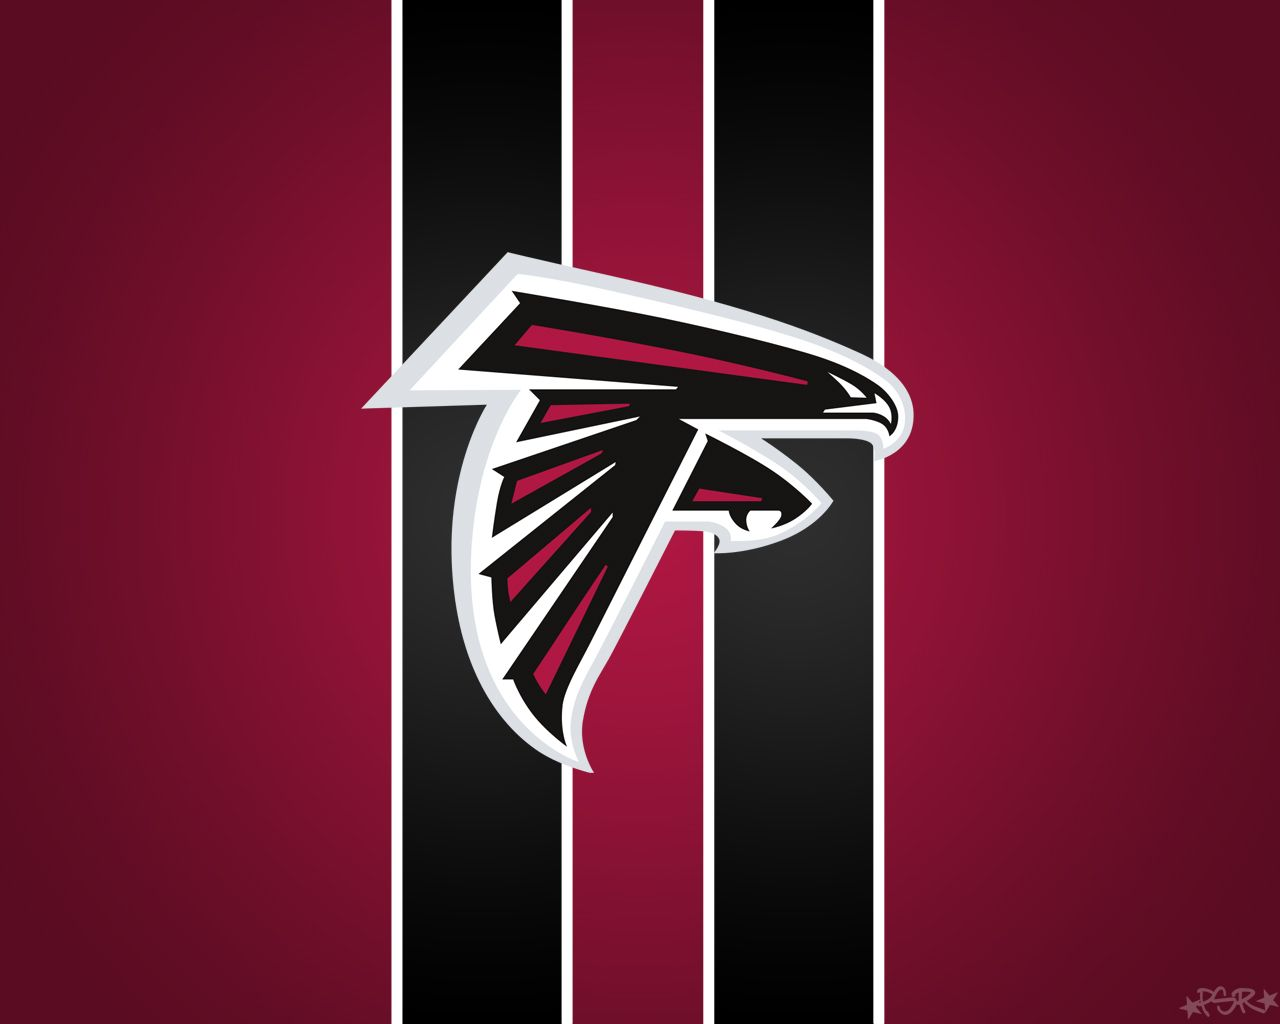 Atlanta Falcons Logo Photos Nfl Iphone Wallpapers: Pin By Alonda Smith On SPORTS